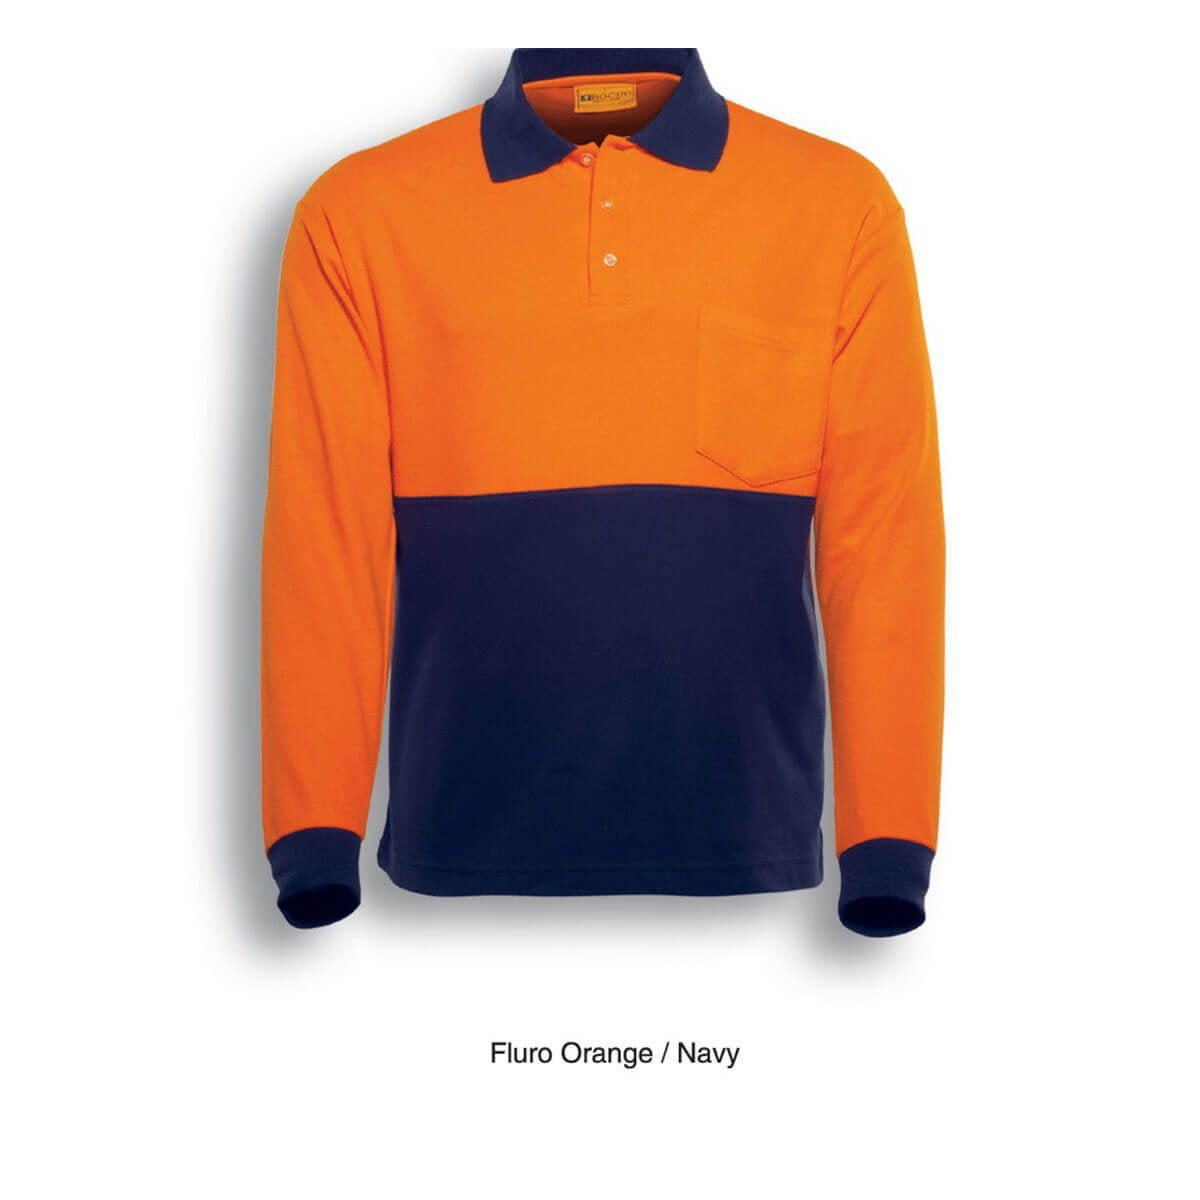 HI-VIS POLY/COTTON POLO -LONG SLEEVE-Orange / Navy